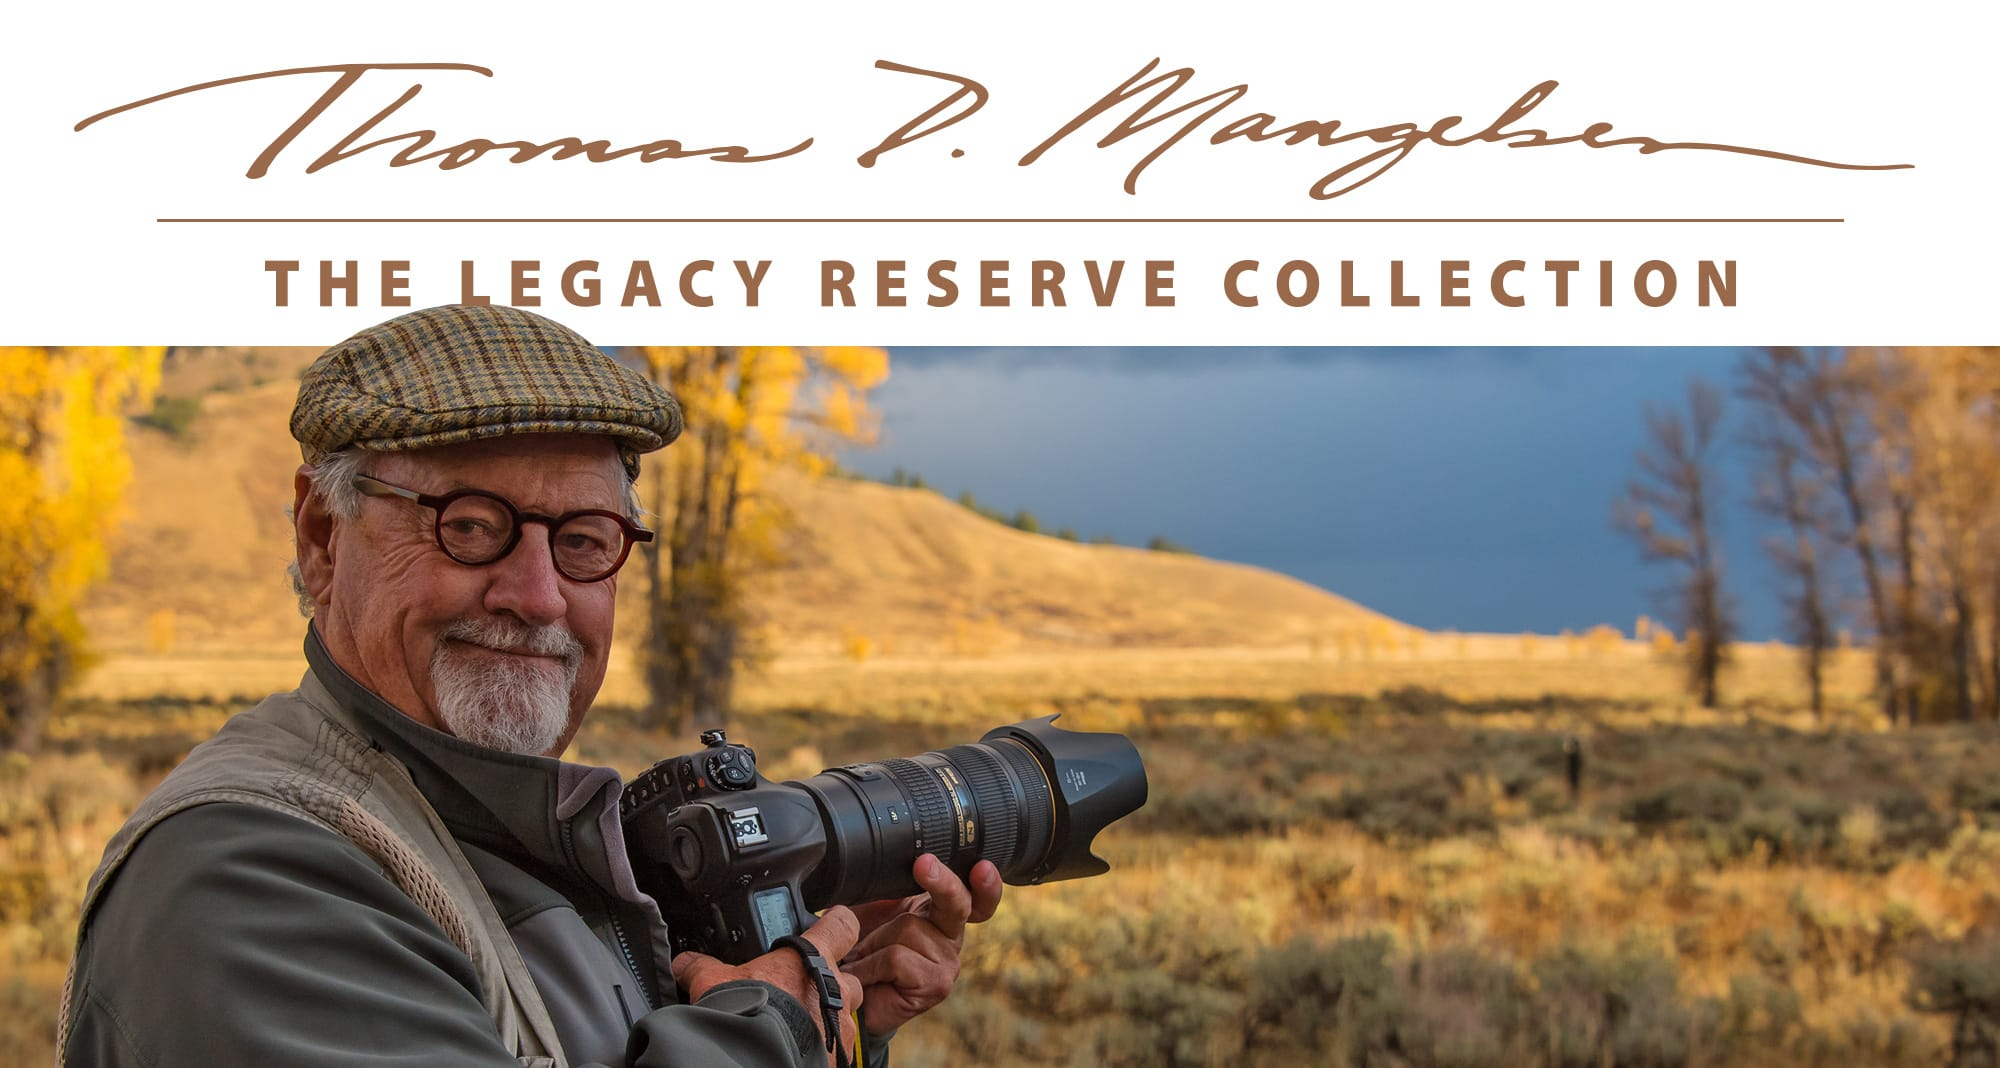 Thomas D. Mangelsen the Legacy Reserve Collection